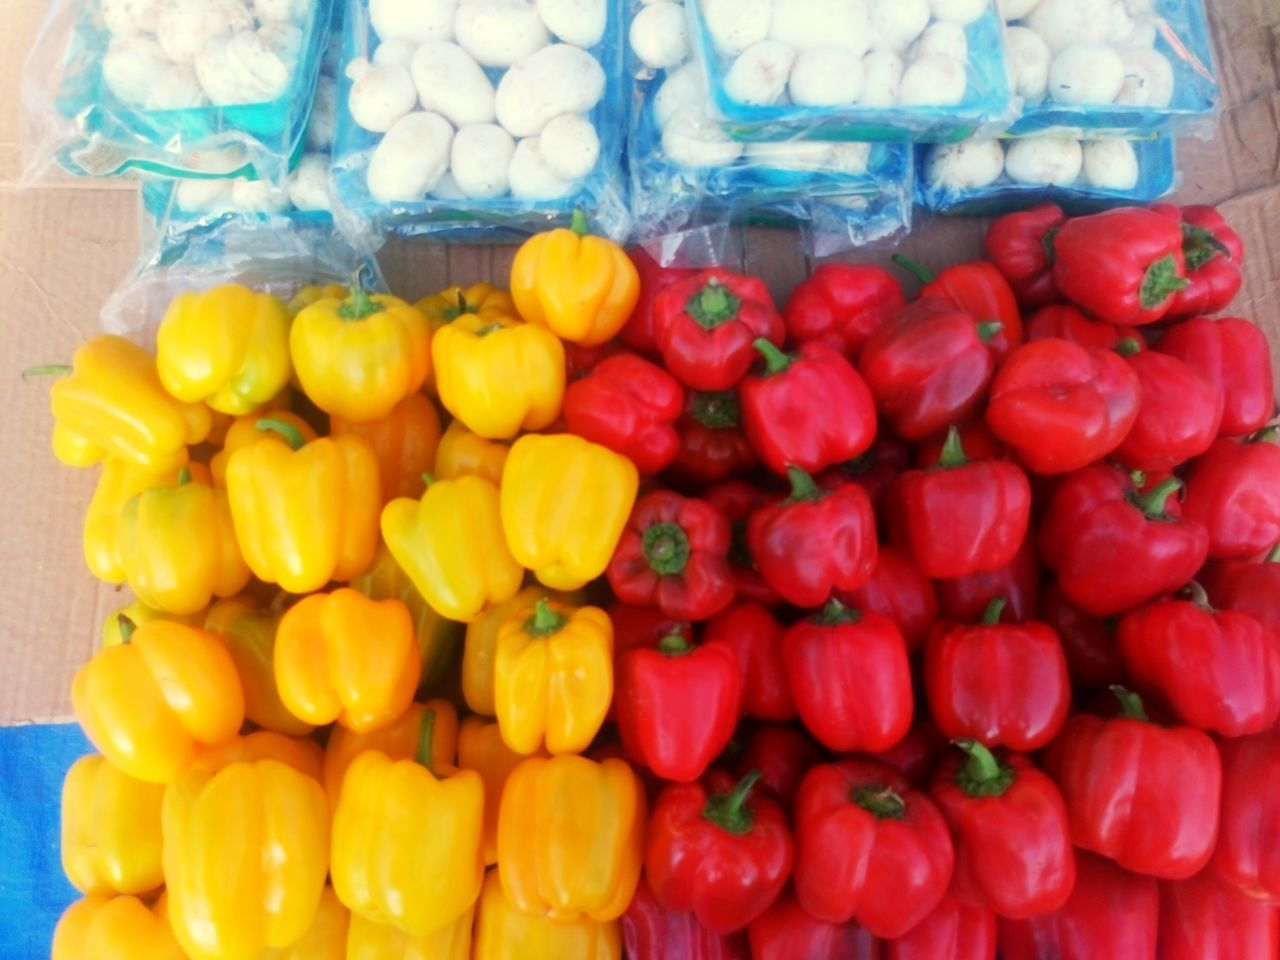 food, food and drink, for sale, freshness, abundance, no people, market, retail, red, healthy eating, large group of objects, choice, stack, yellow, day, close-up, outdoors